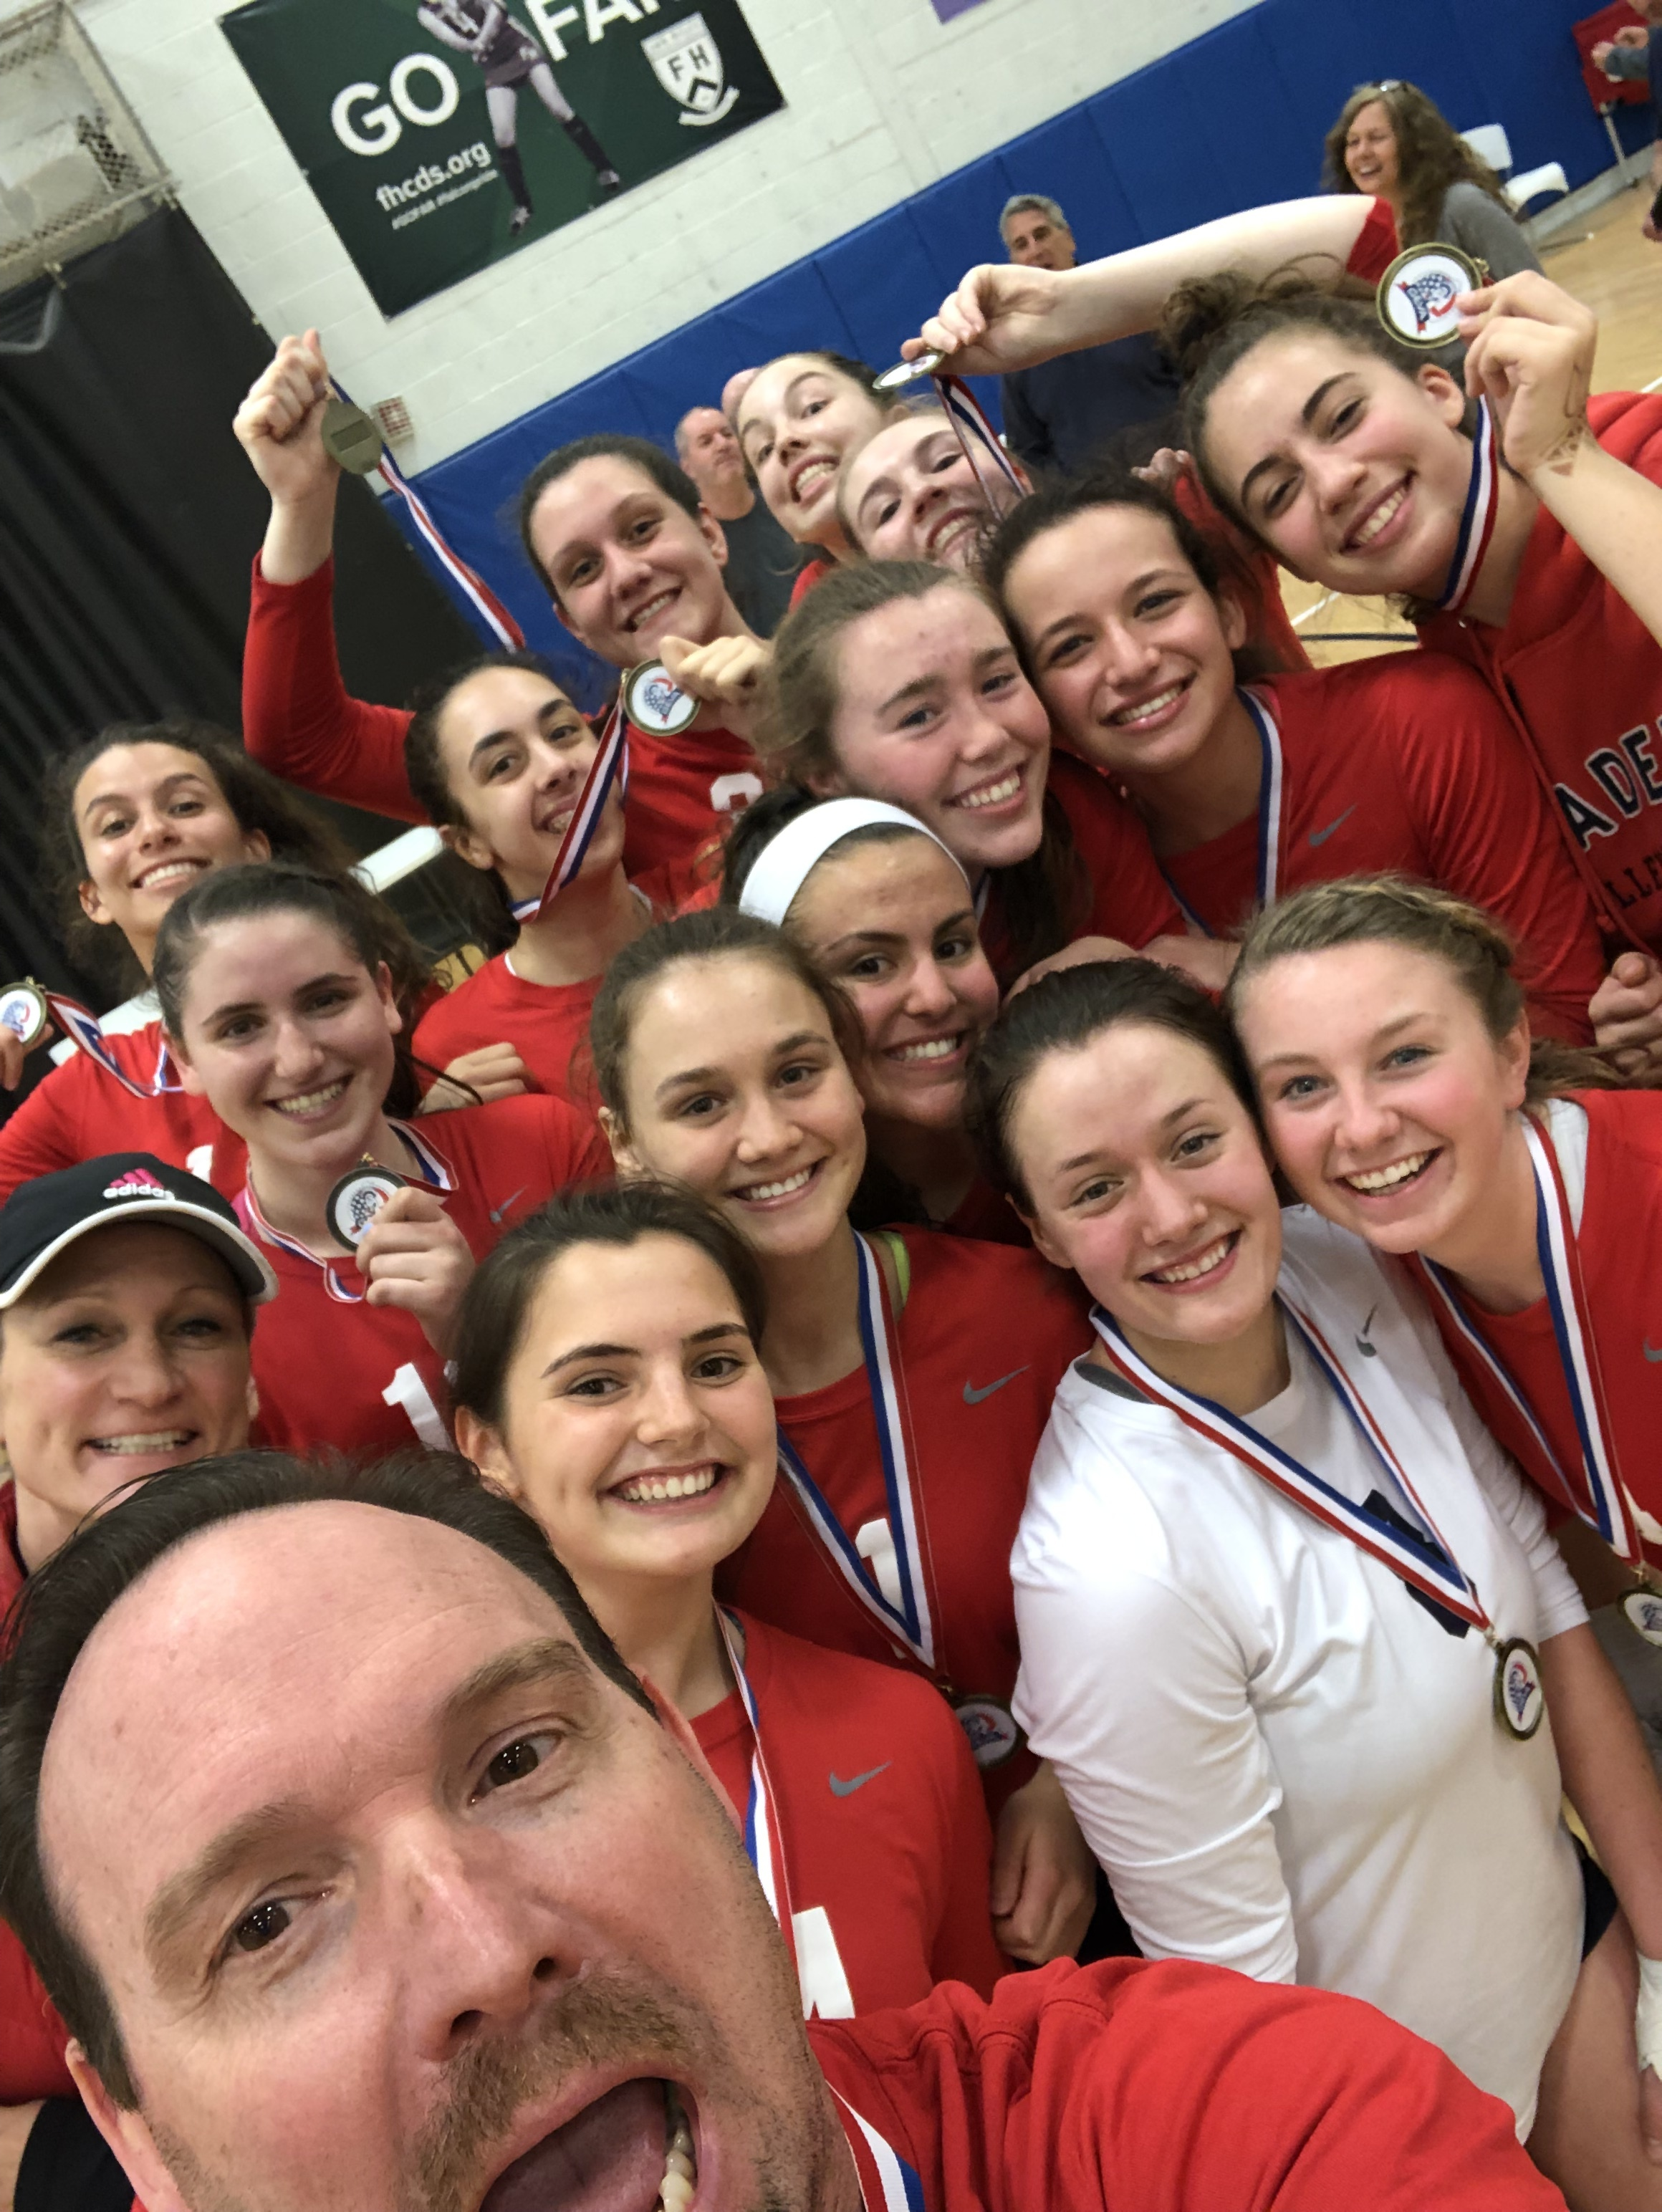 Girls 16 Red - USA Volleyball National Championships, Indianapolis, IN